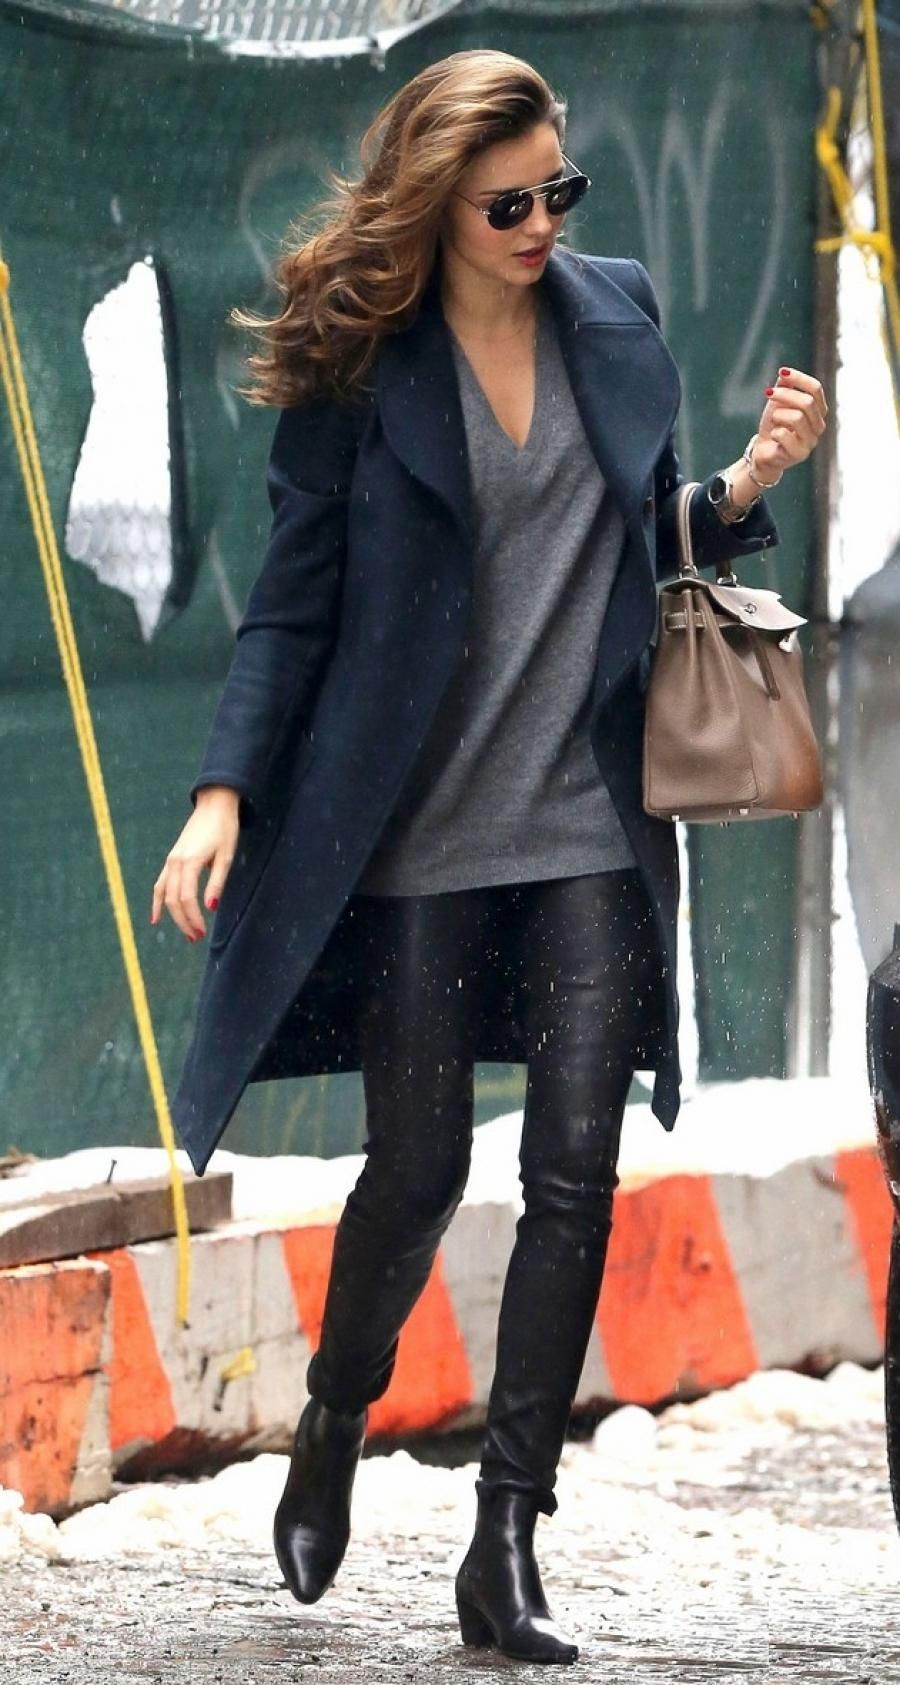 miranda kerr style 50+ best outfits - Page 53 of 100 ...